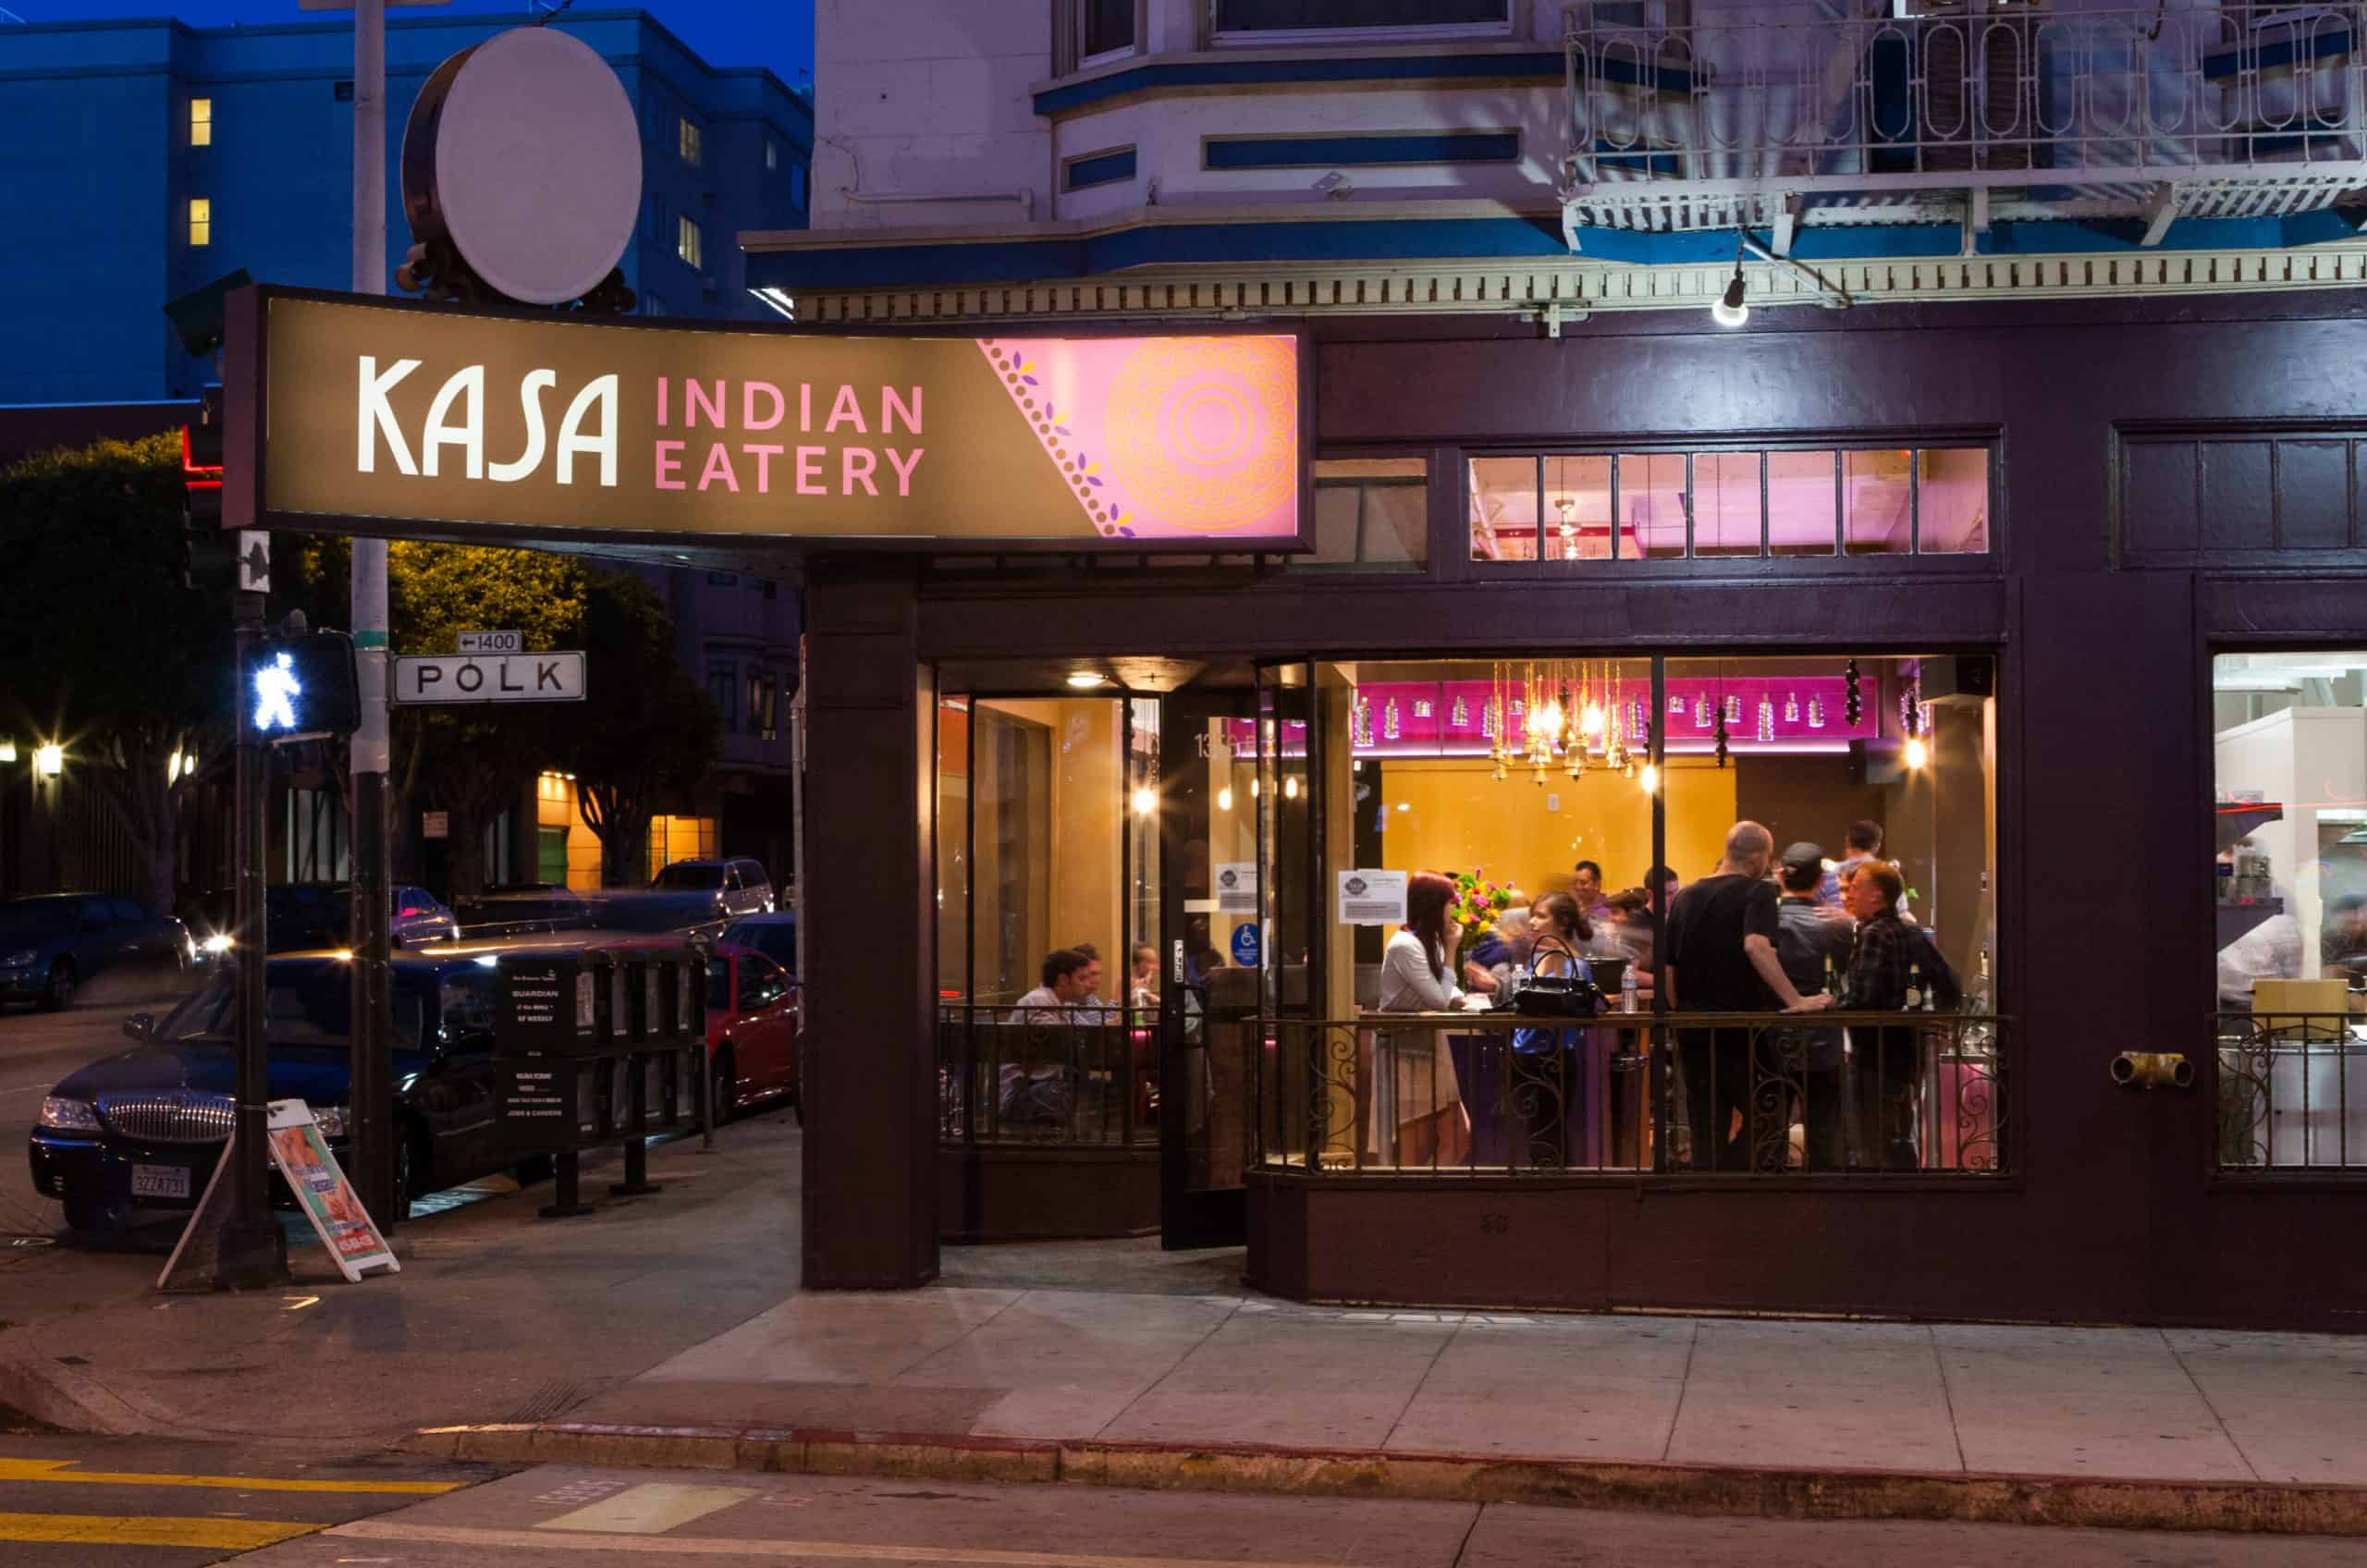 Kasa Indian Restaurant on Polk Street San Francisco exterior restaurant picture at night